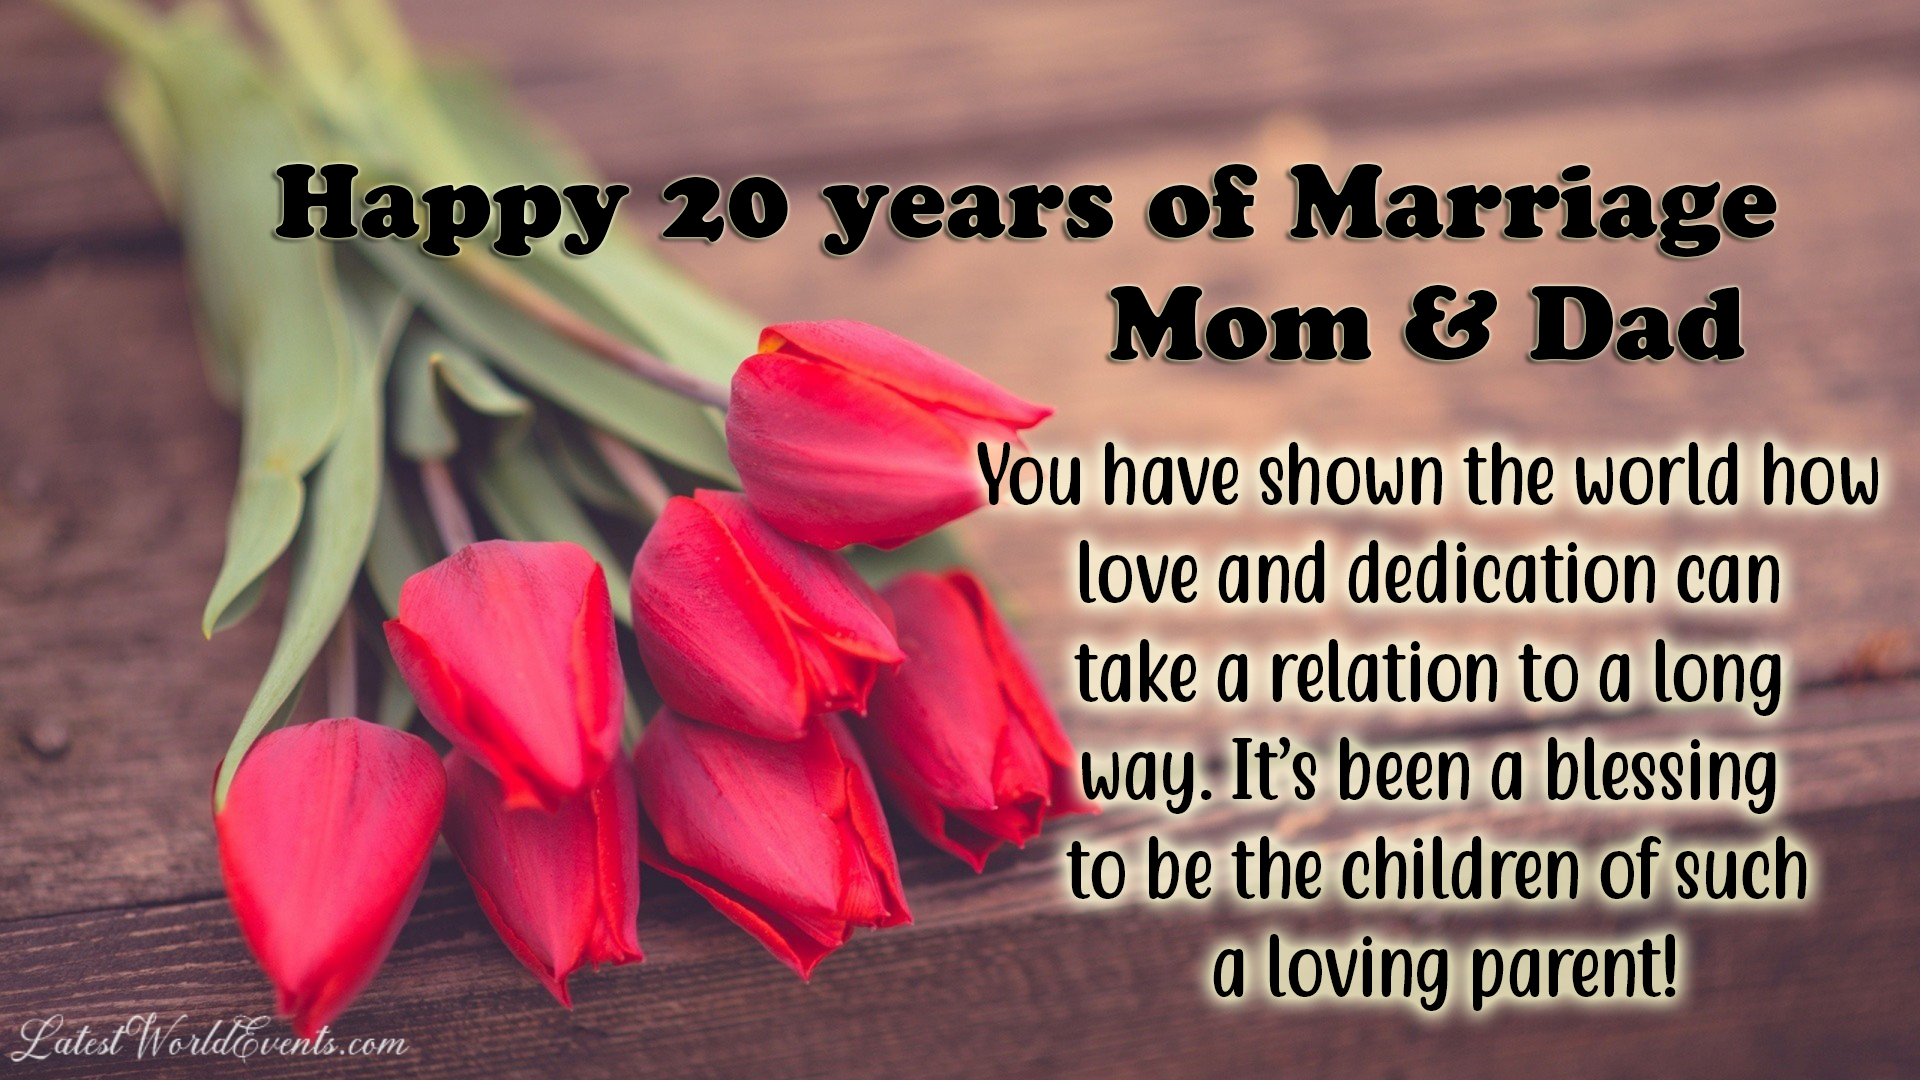 20th anniversary wishes for parents & 20th wedding anniversary wishes